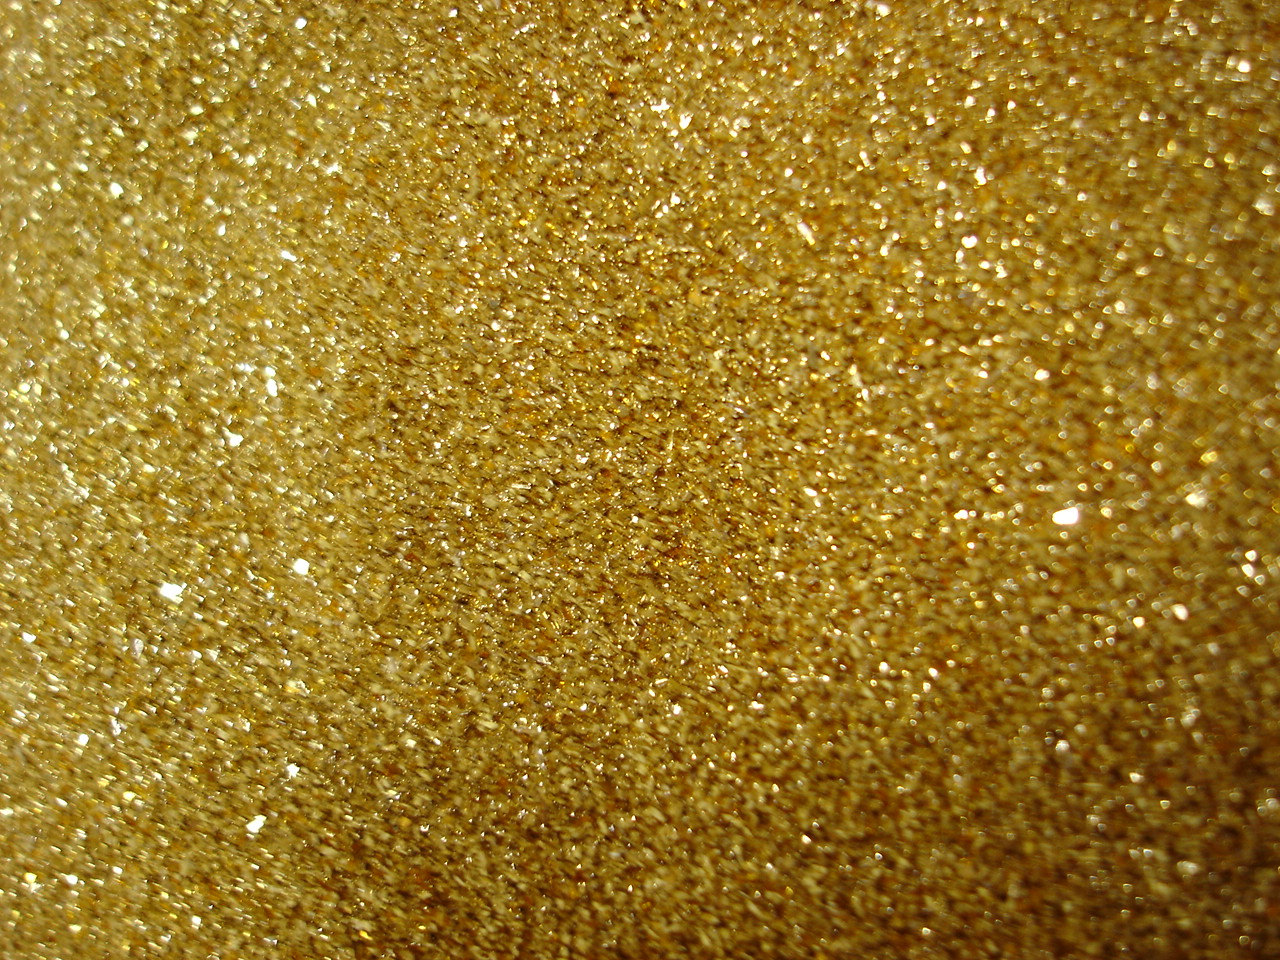 Twitter Background Glitter Gold